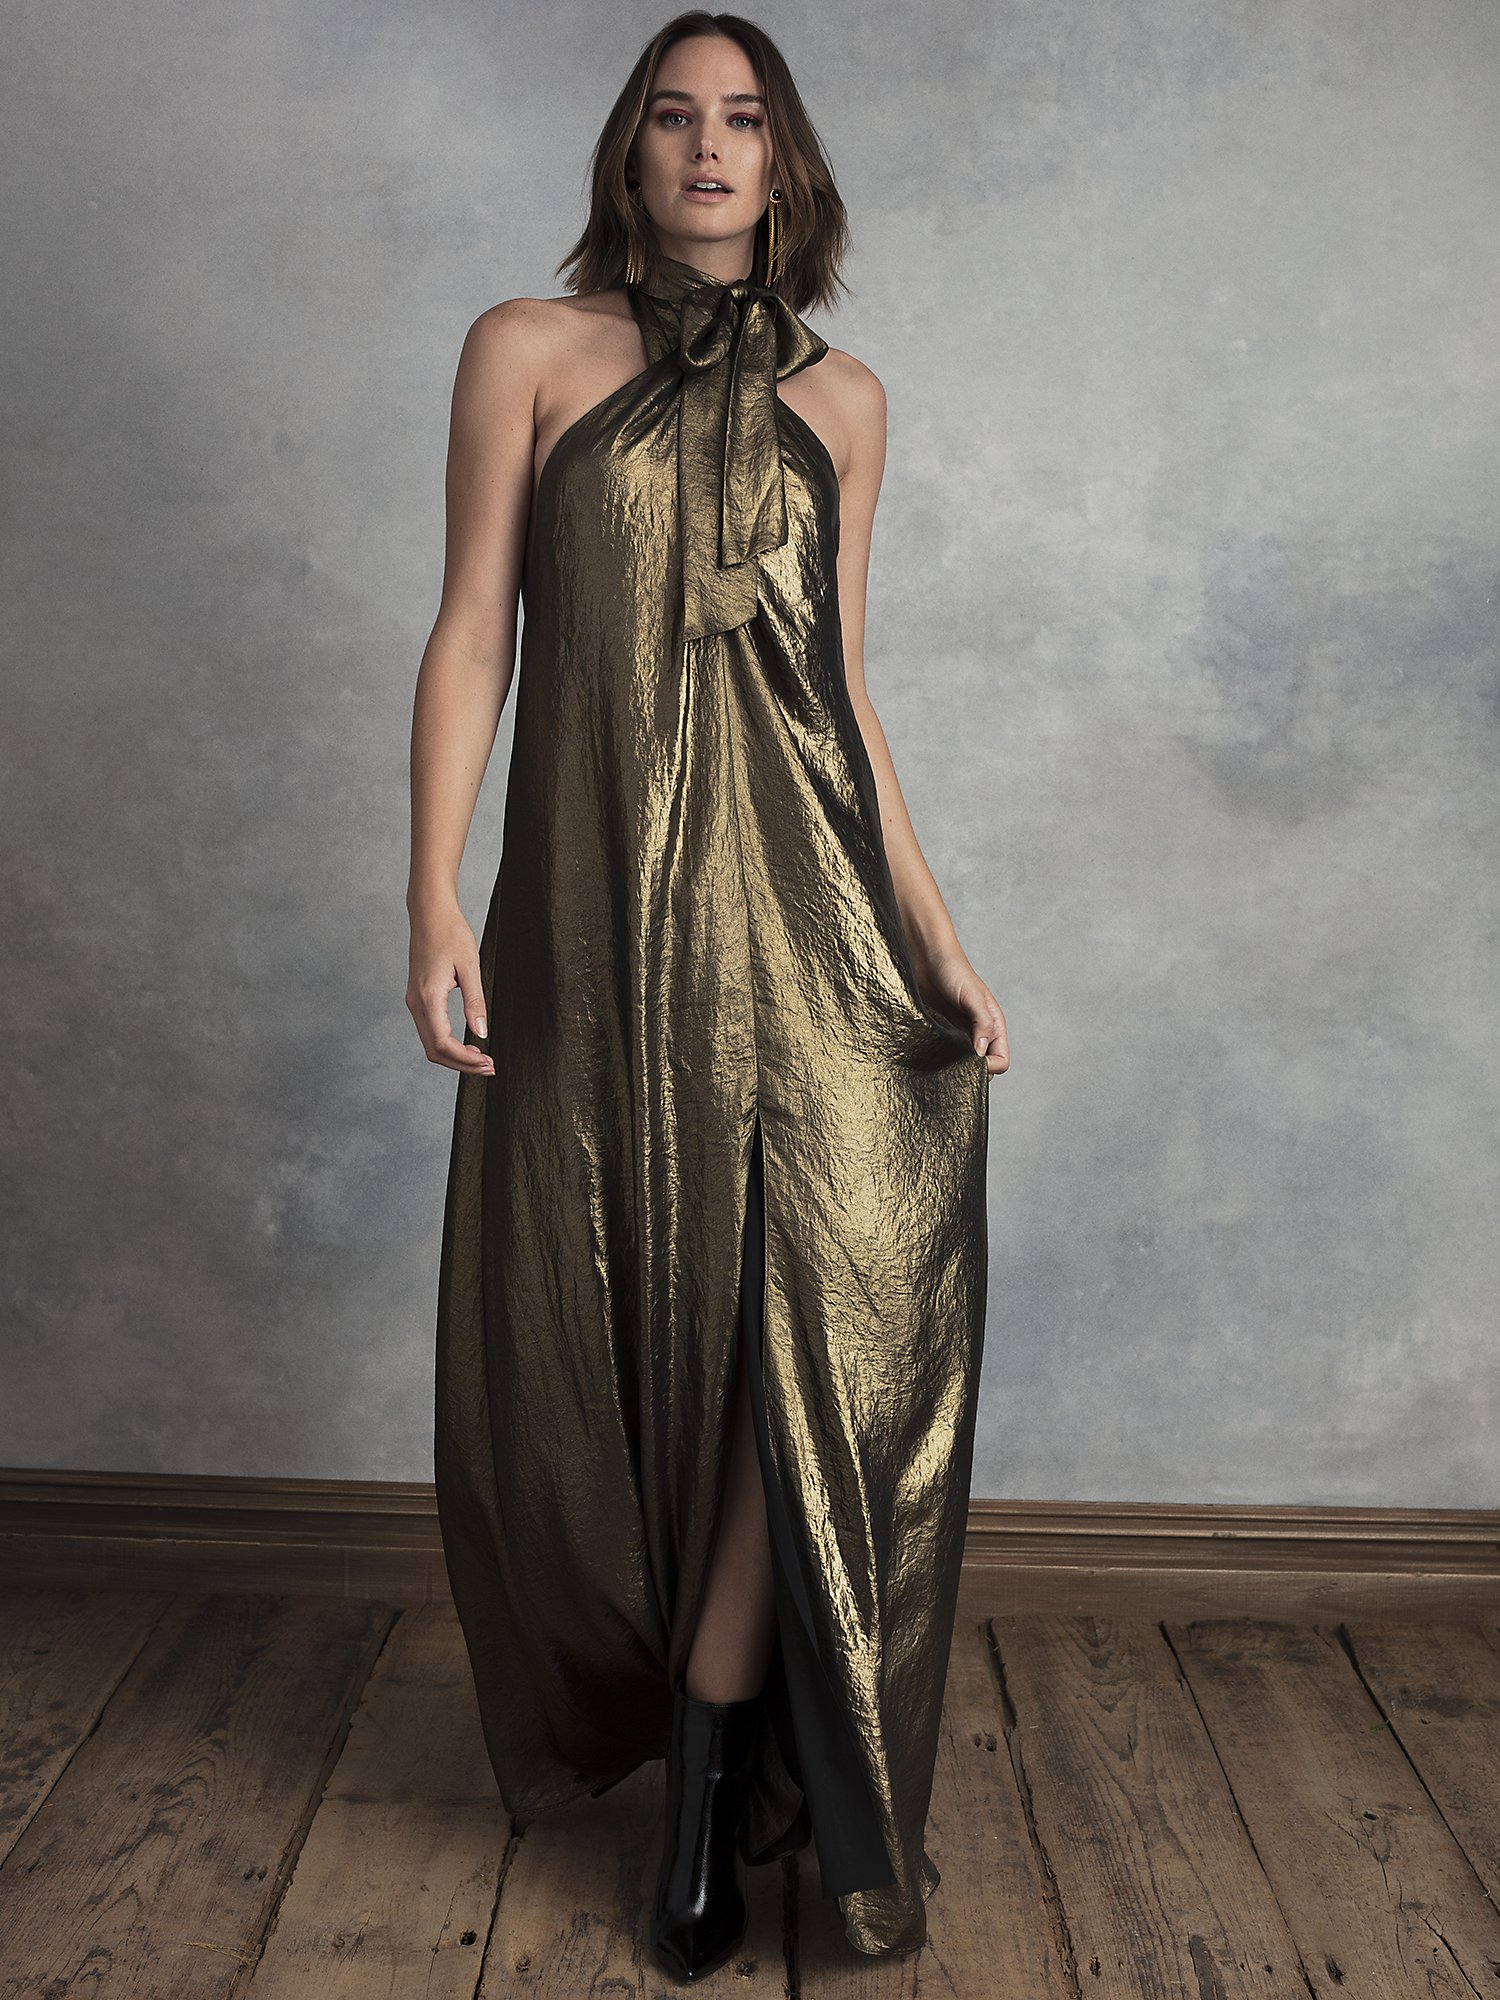 70s Dresses – Disco Dress, Hippie Dress, Wrap Dress Womens Journey Wrap Front Maxi Dress With Recycled Polyester in Rich Gold  Size Small by HappyxNature $64.00 AT vintagedancer.com